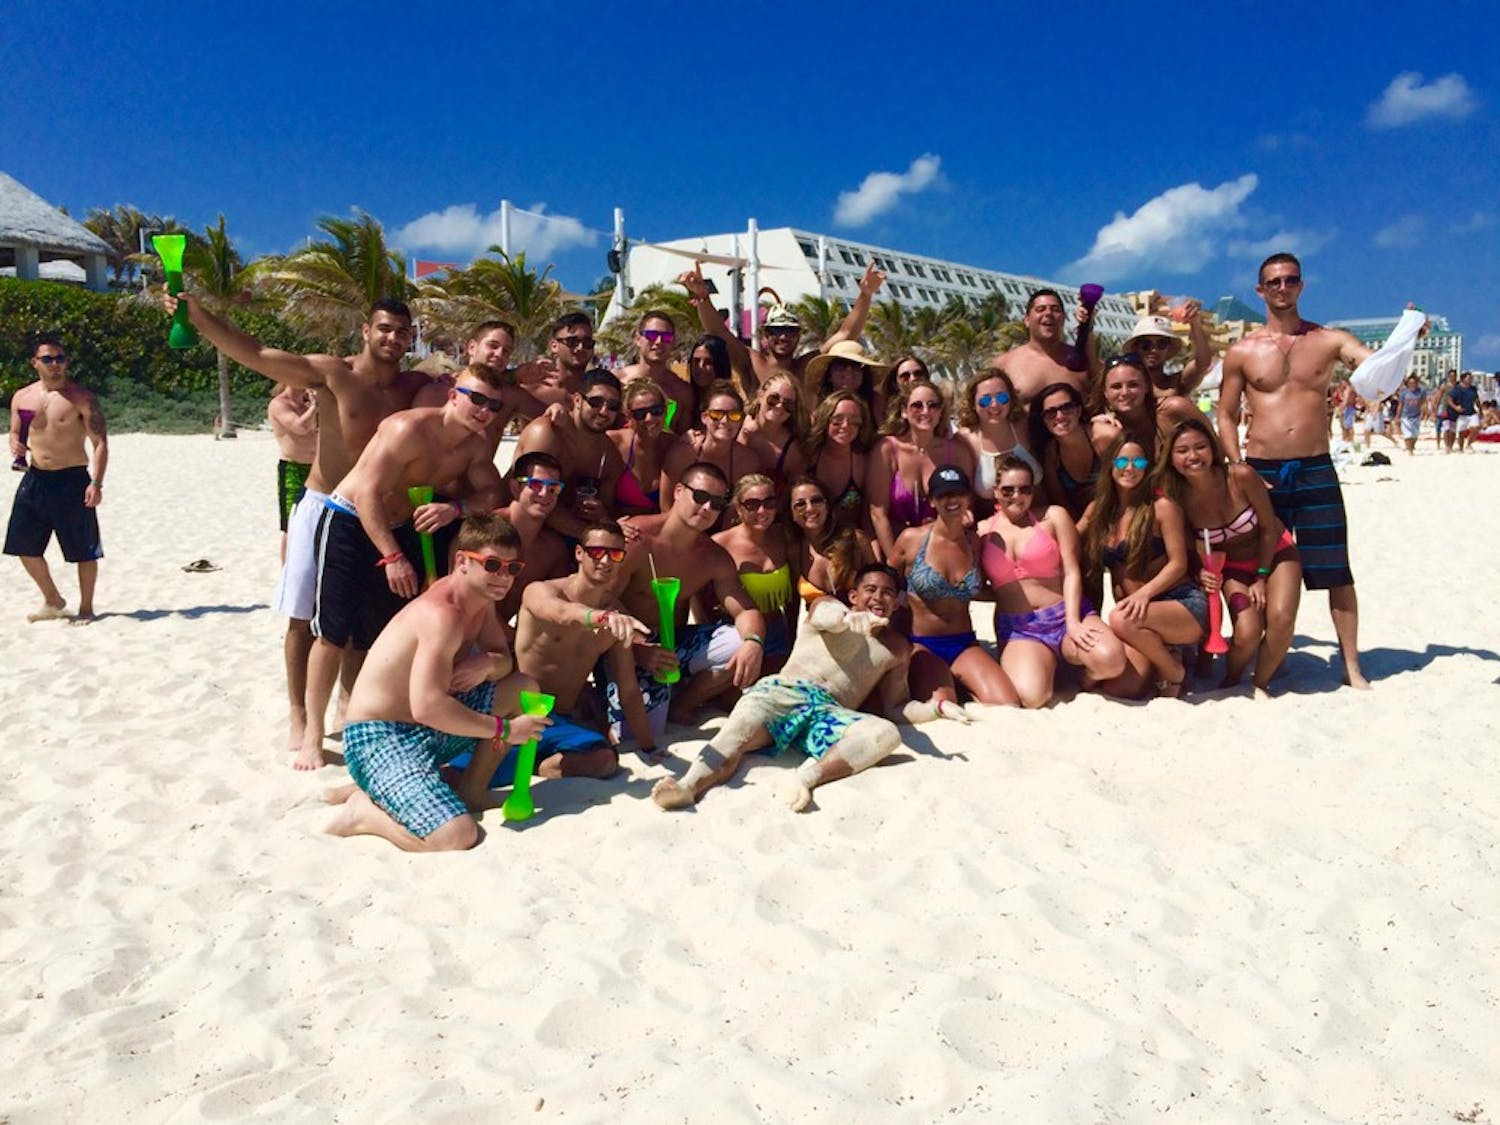 David Rubino and his friends pose for a photo during a spring break trip.While some students choose to stay home during spring break, others go on tropical vacations.